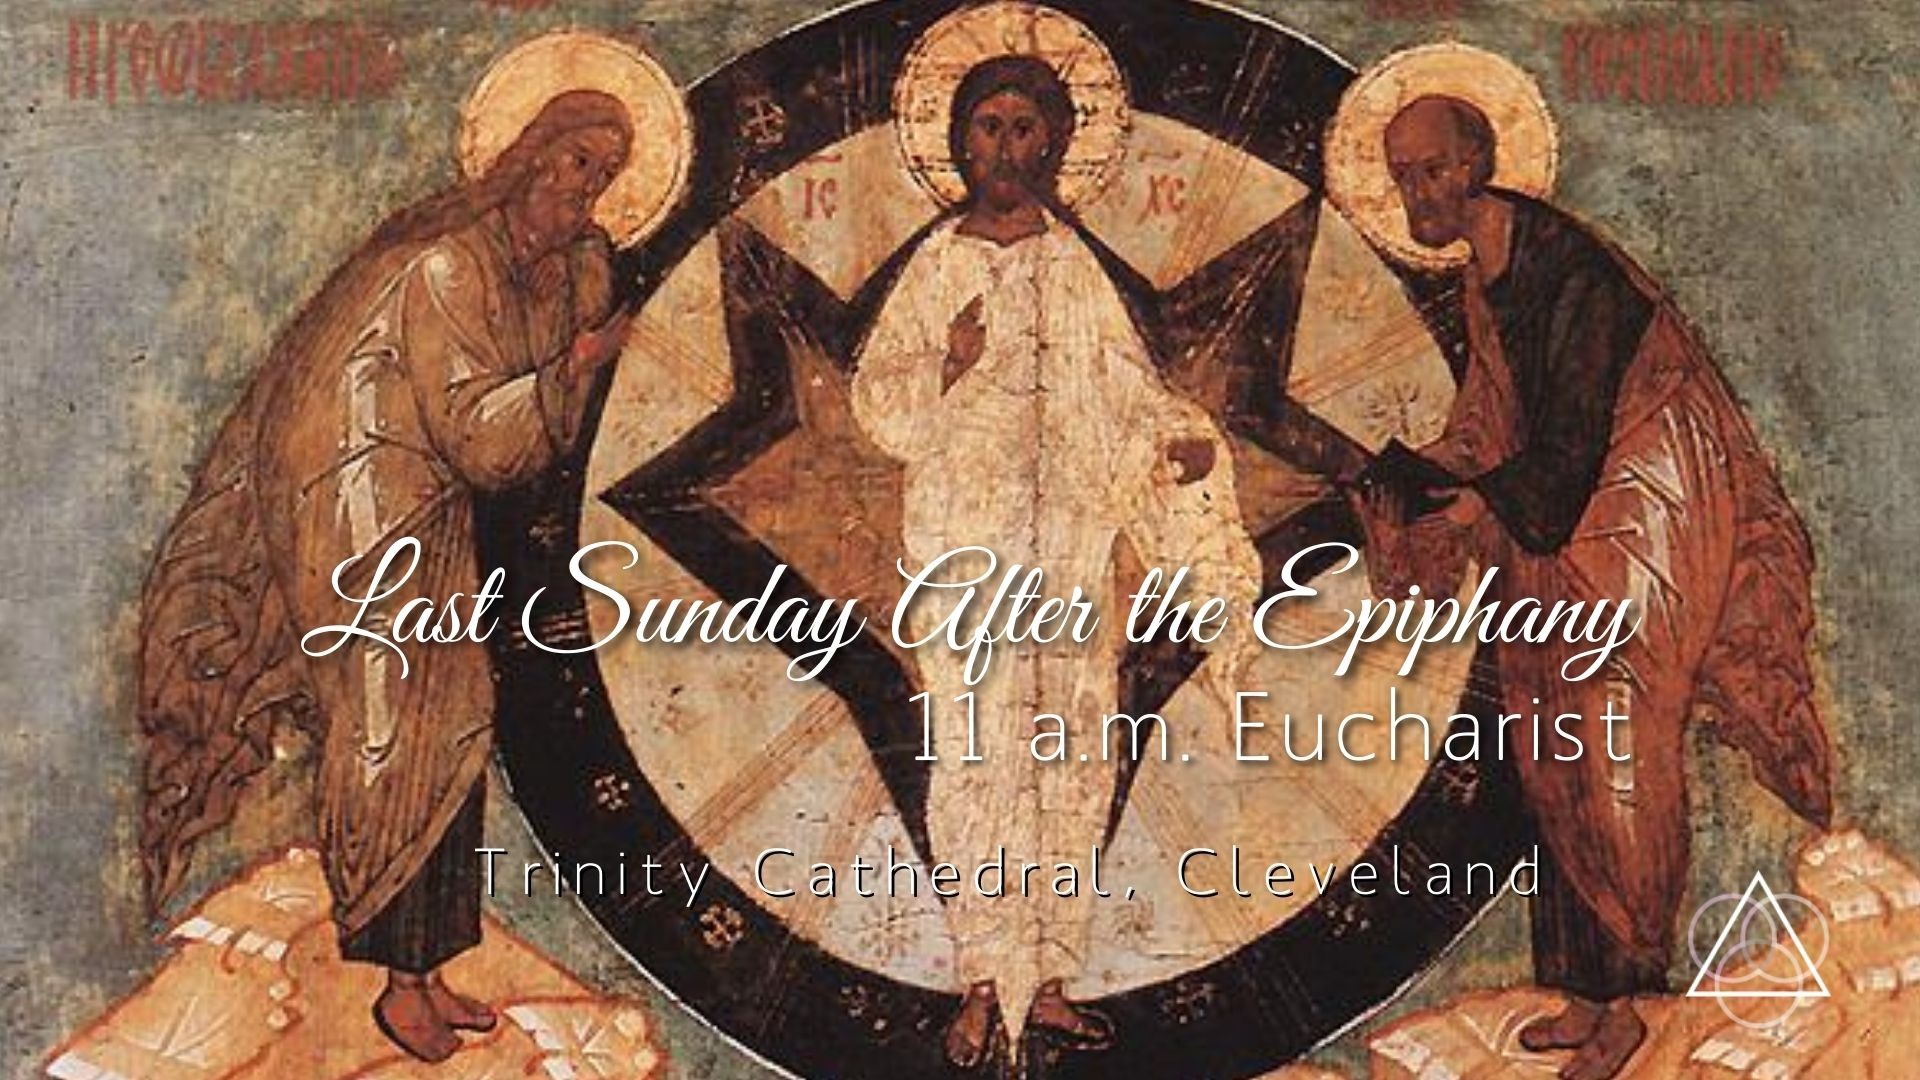 Holy Eucharist: The Last Sunday After the Epiphany—February 14, 2021